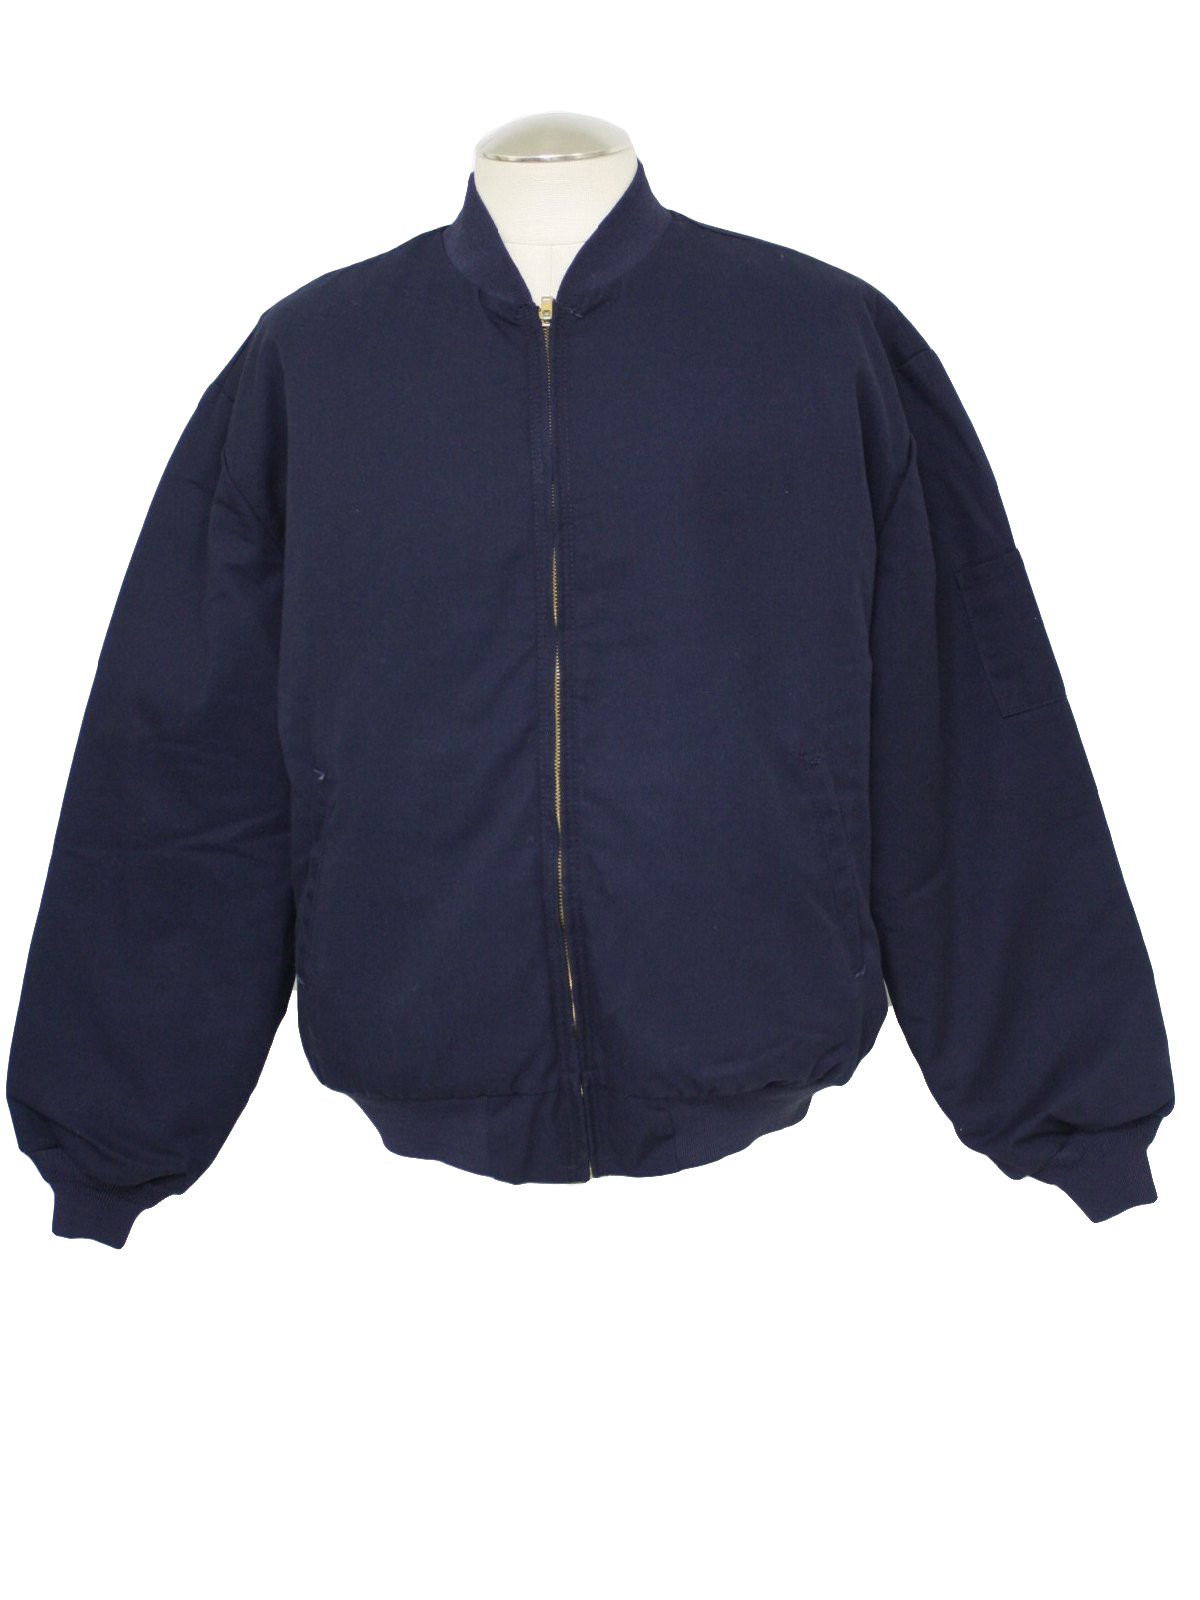 Jacket Navy Blue - Coat Nj